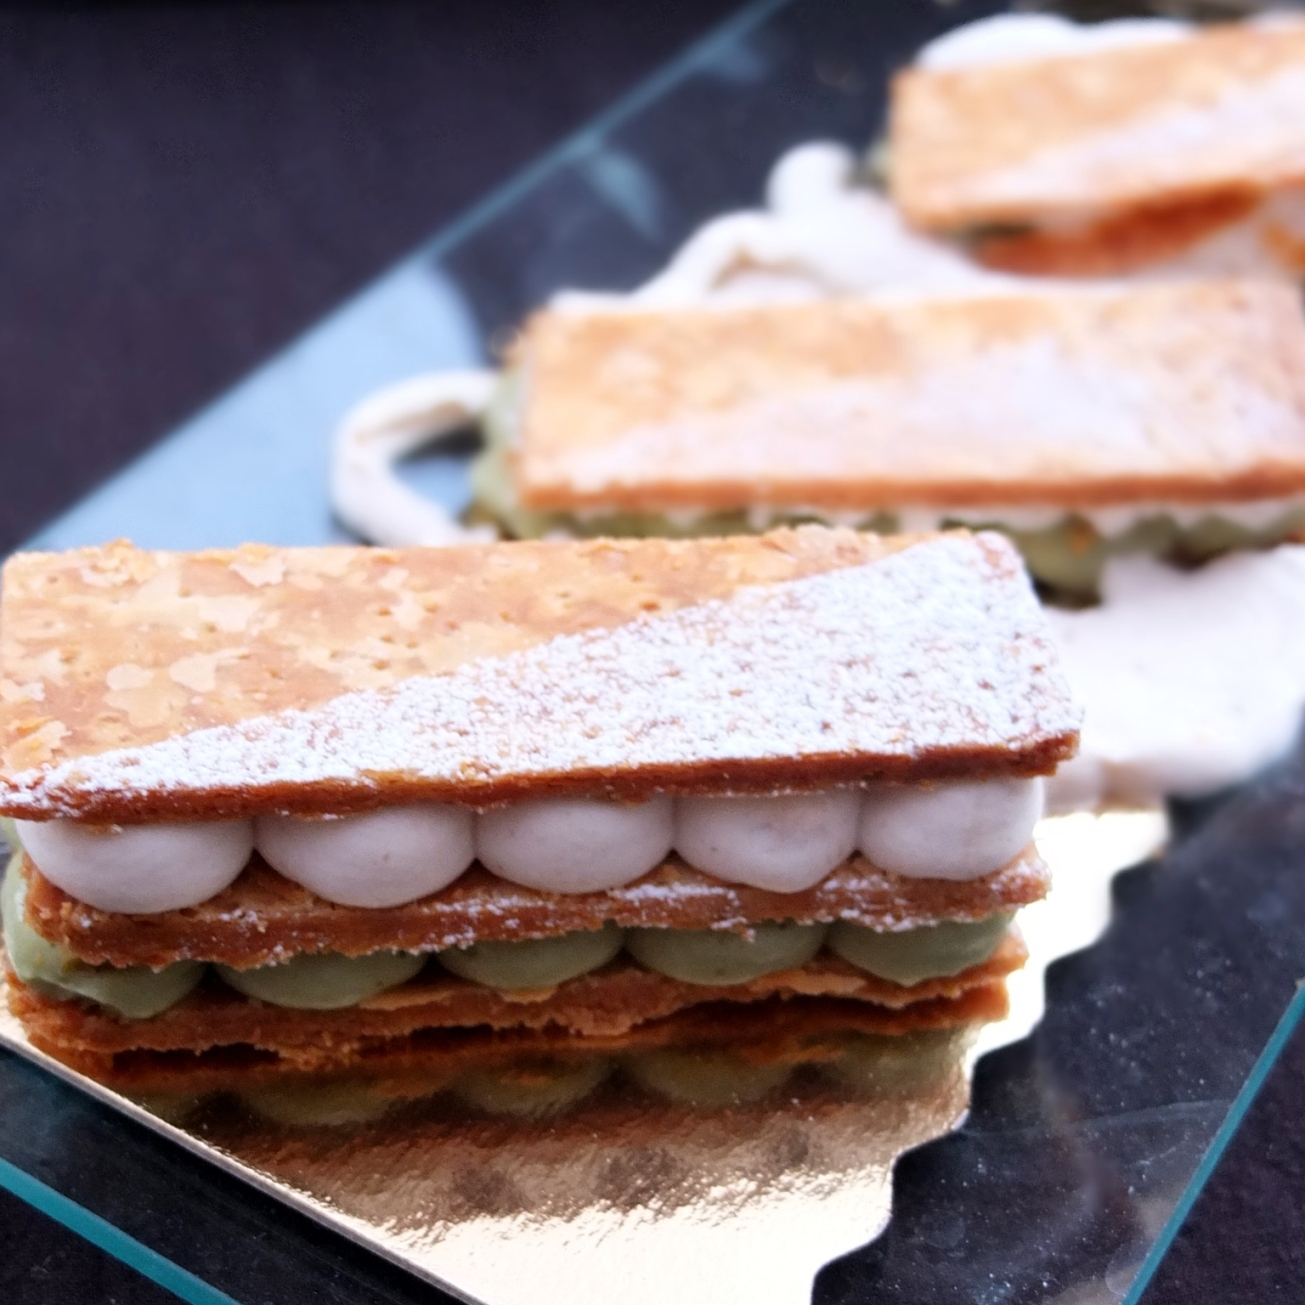 Matcha white chocolate and chestnut millefeuilles - the accident